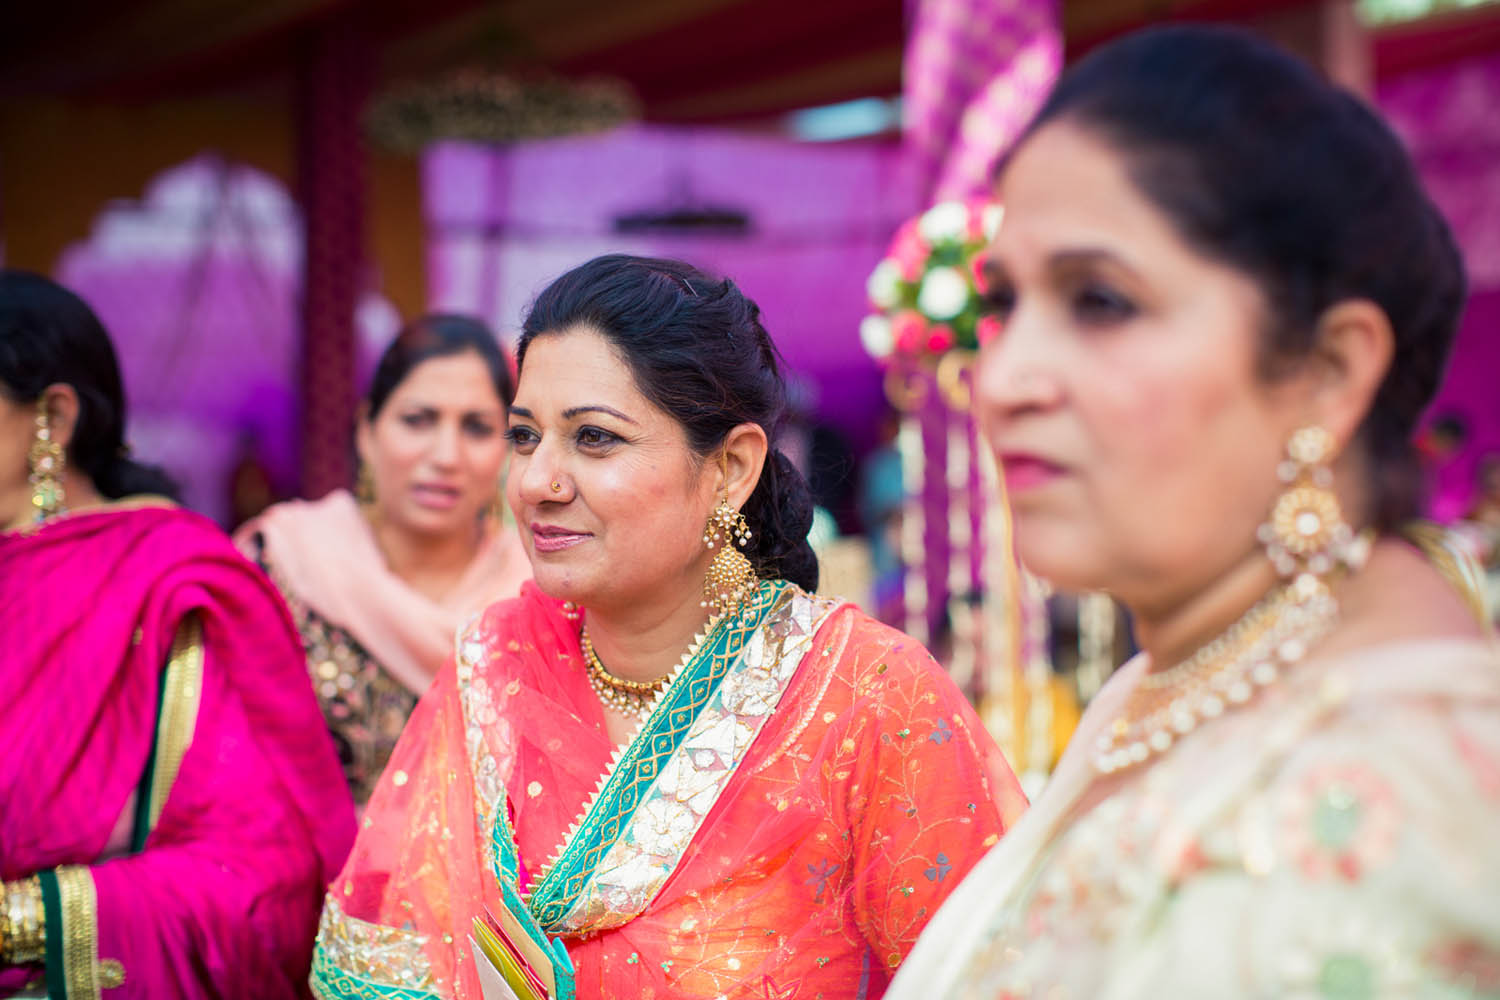 punjab_wedding68.jpg